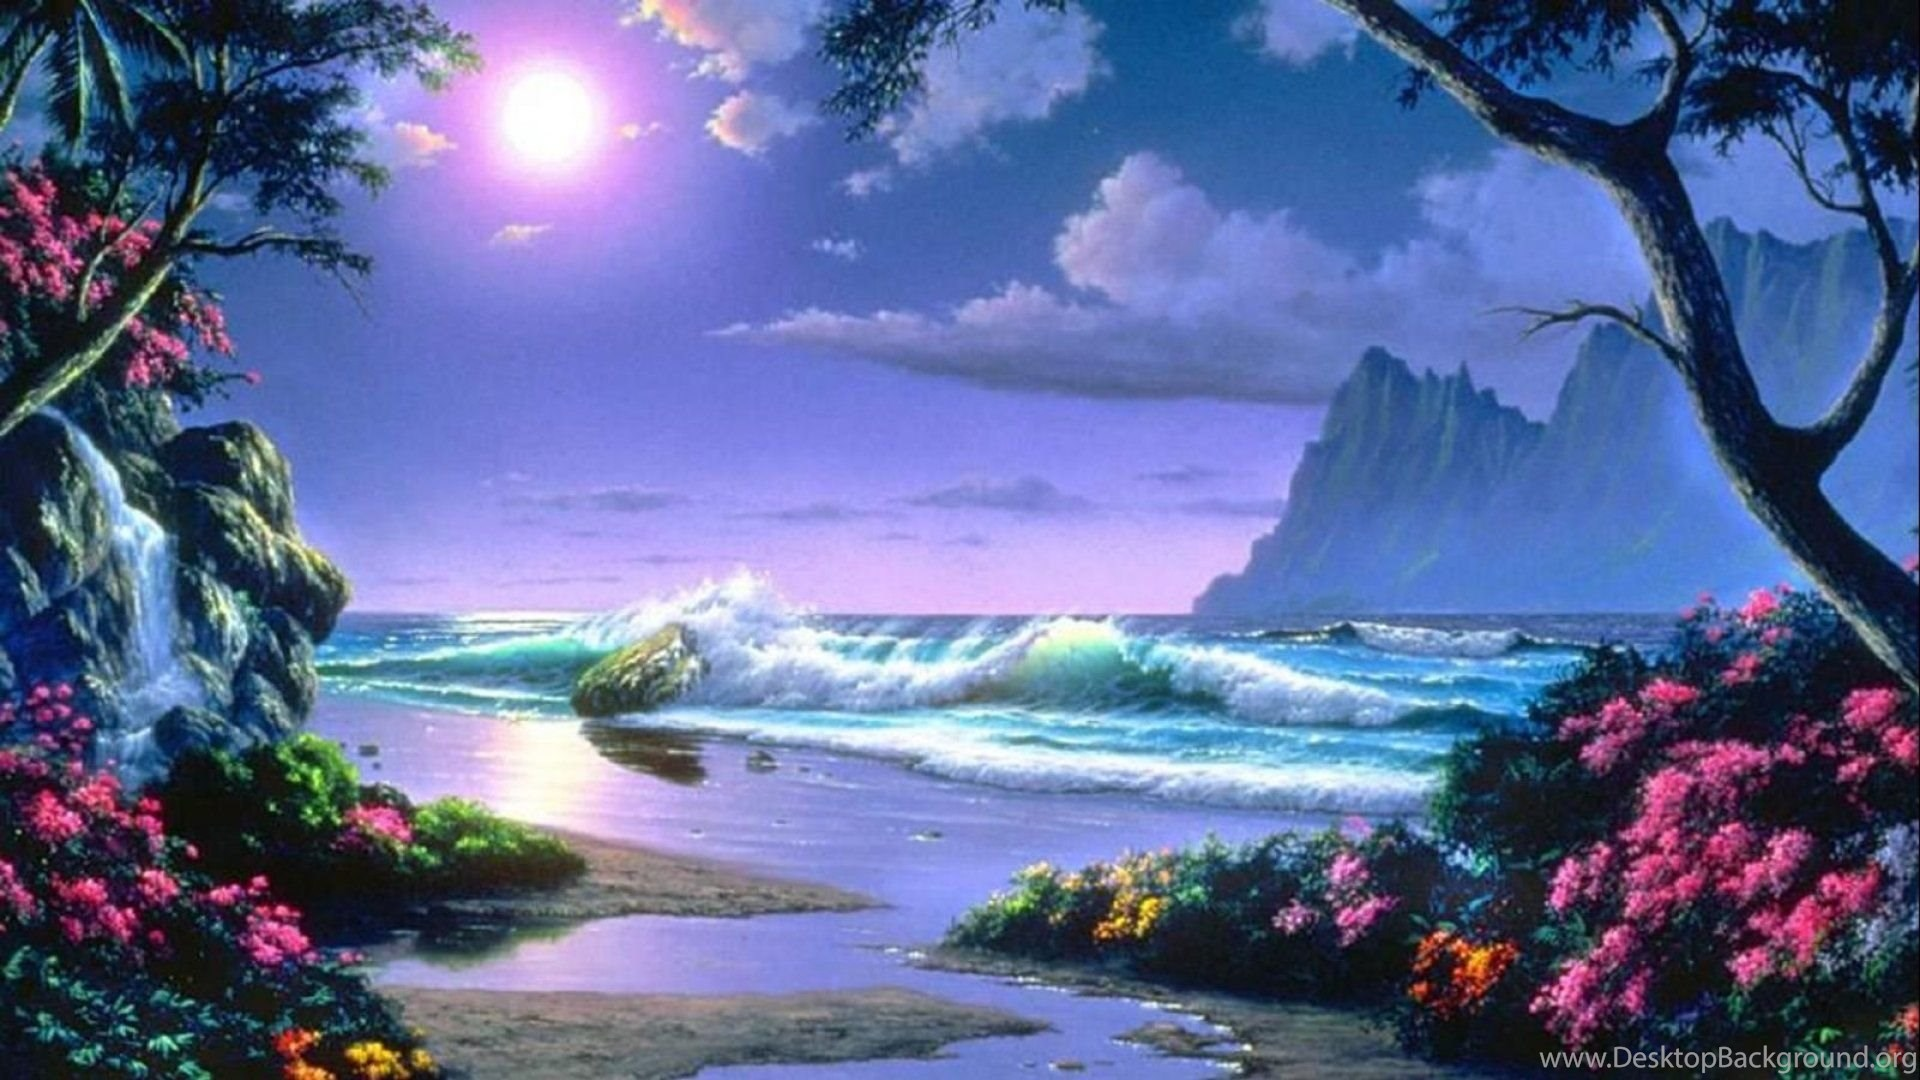 Fantasy Landscape Art Artwork Nature Scenery Wallpapers Desktop Background